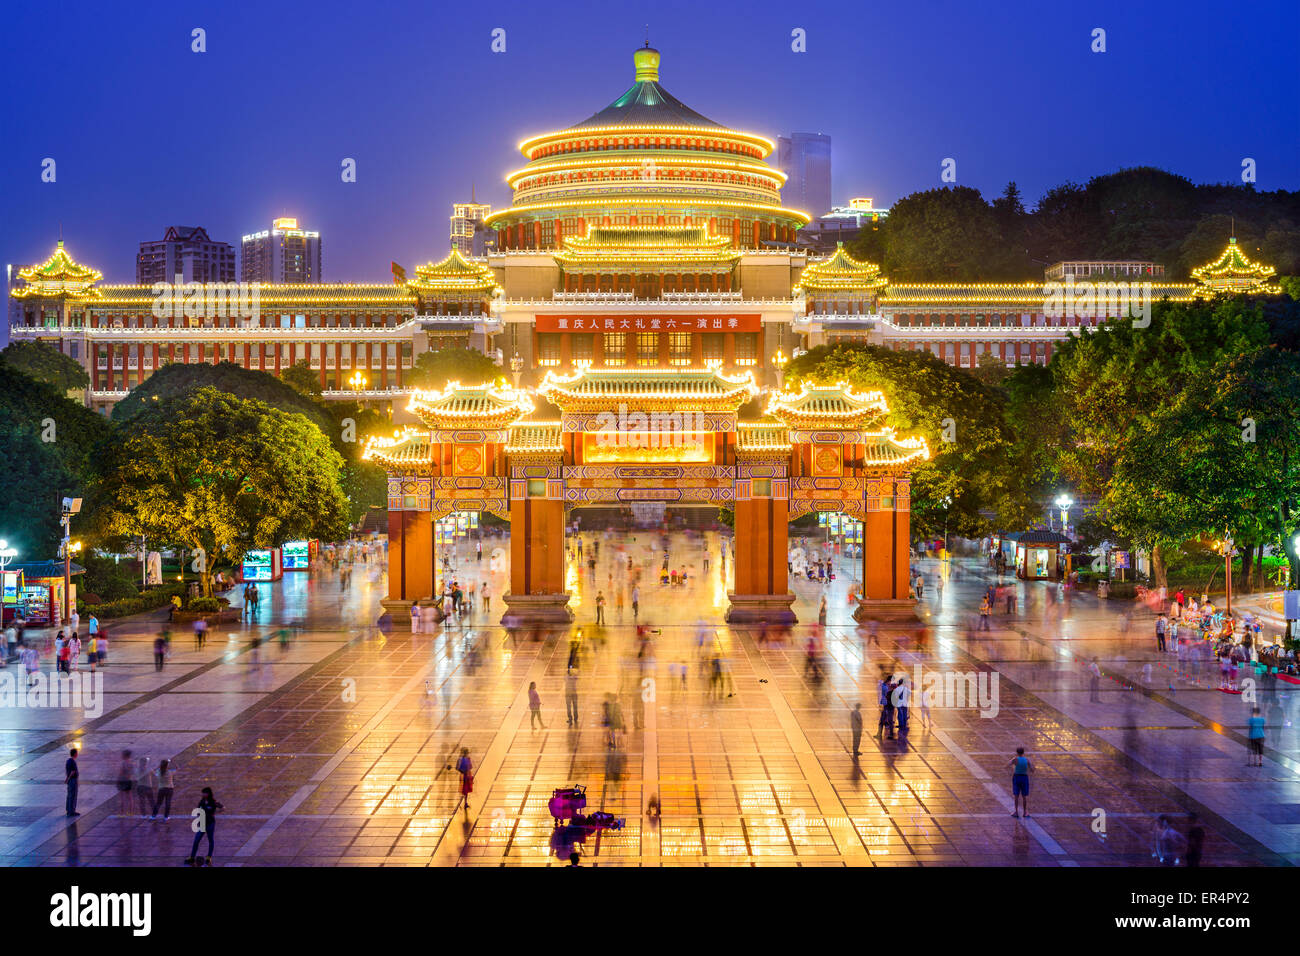 Chongqing, China at Great Hall of the People and People's Square. Stock Photo